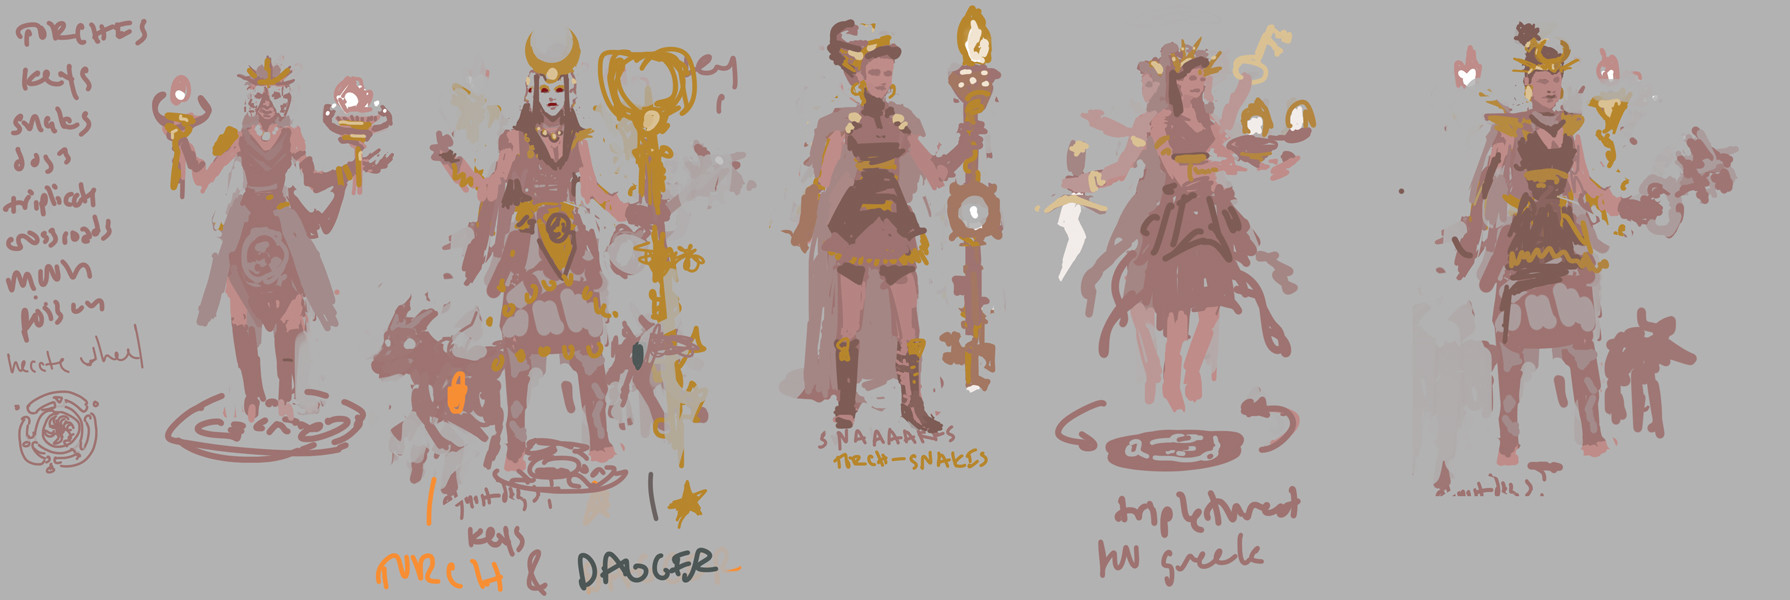 Devin platts hecate sketches wip01